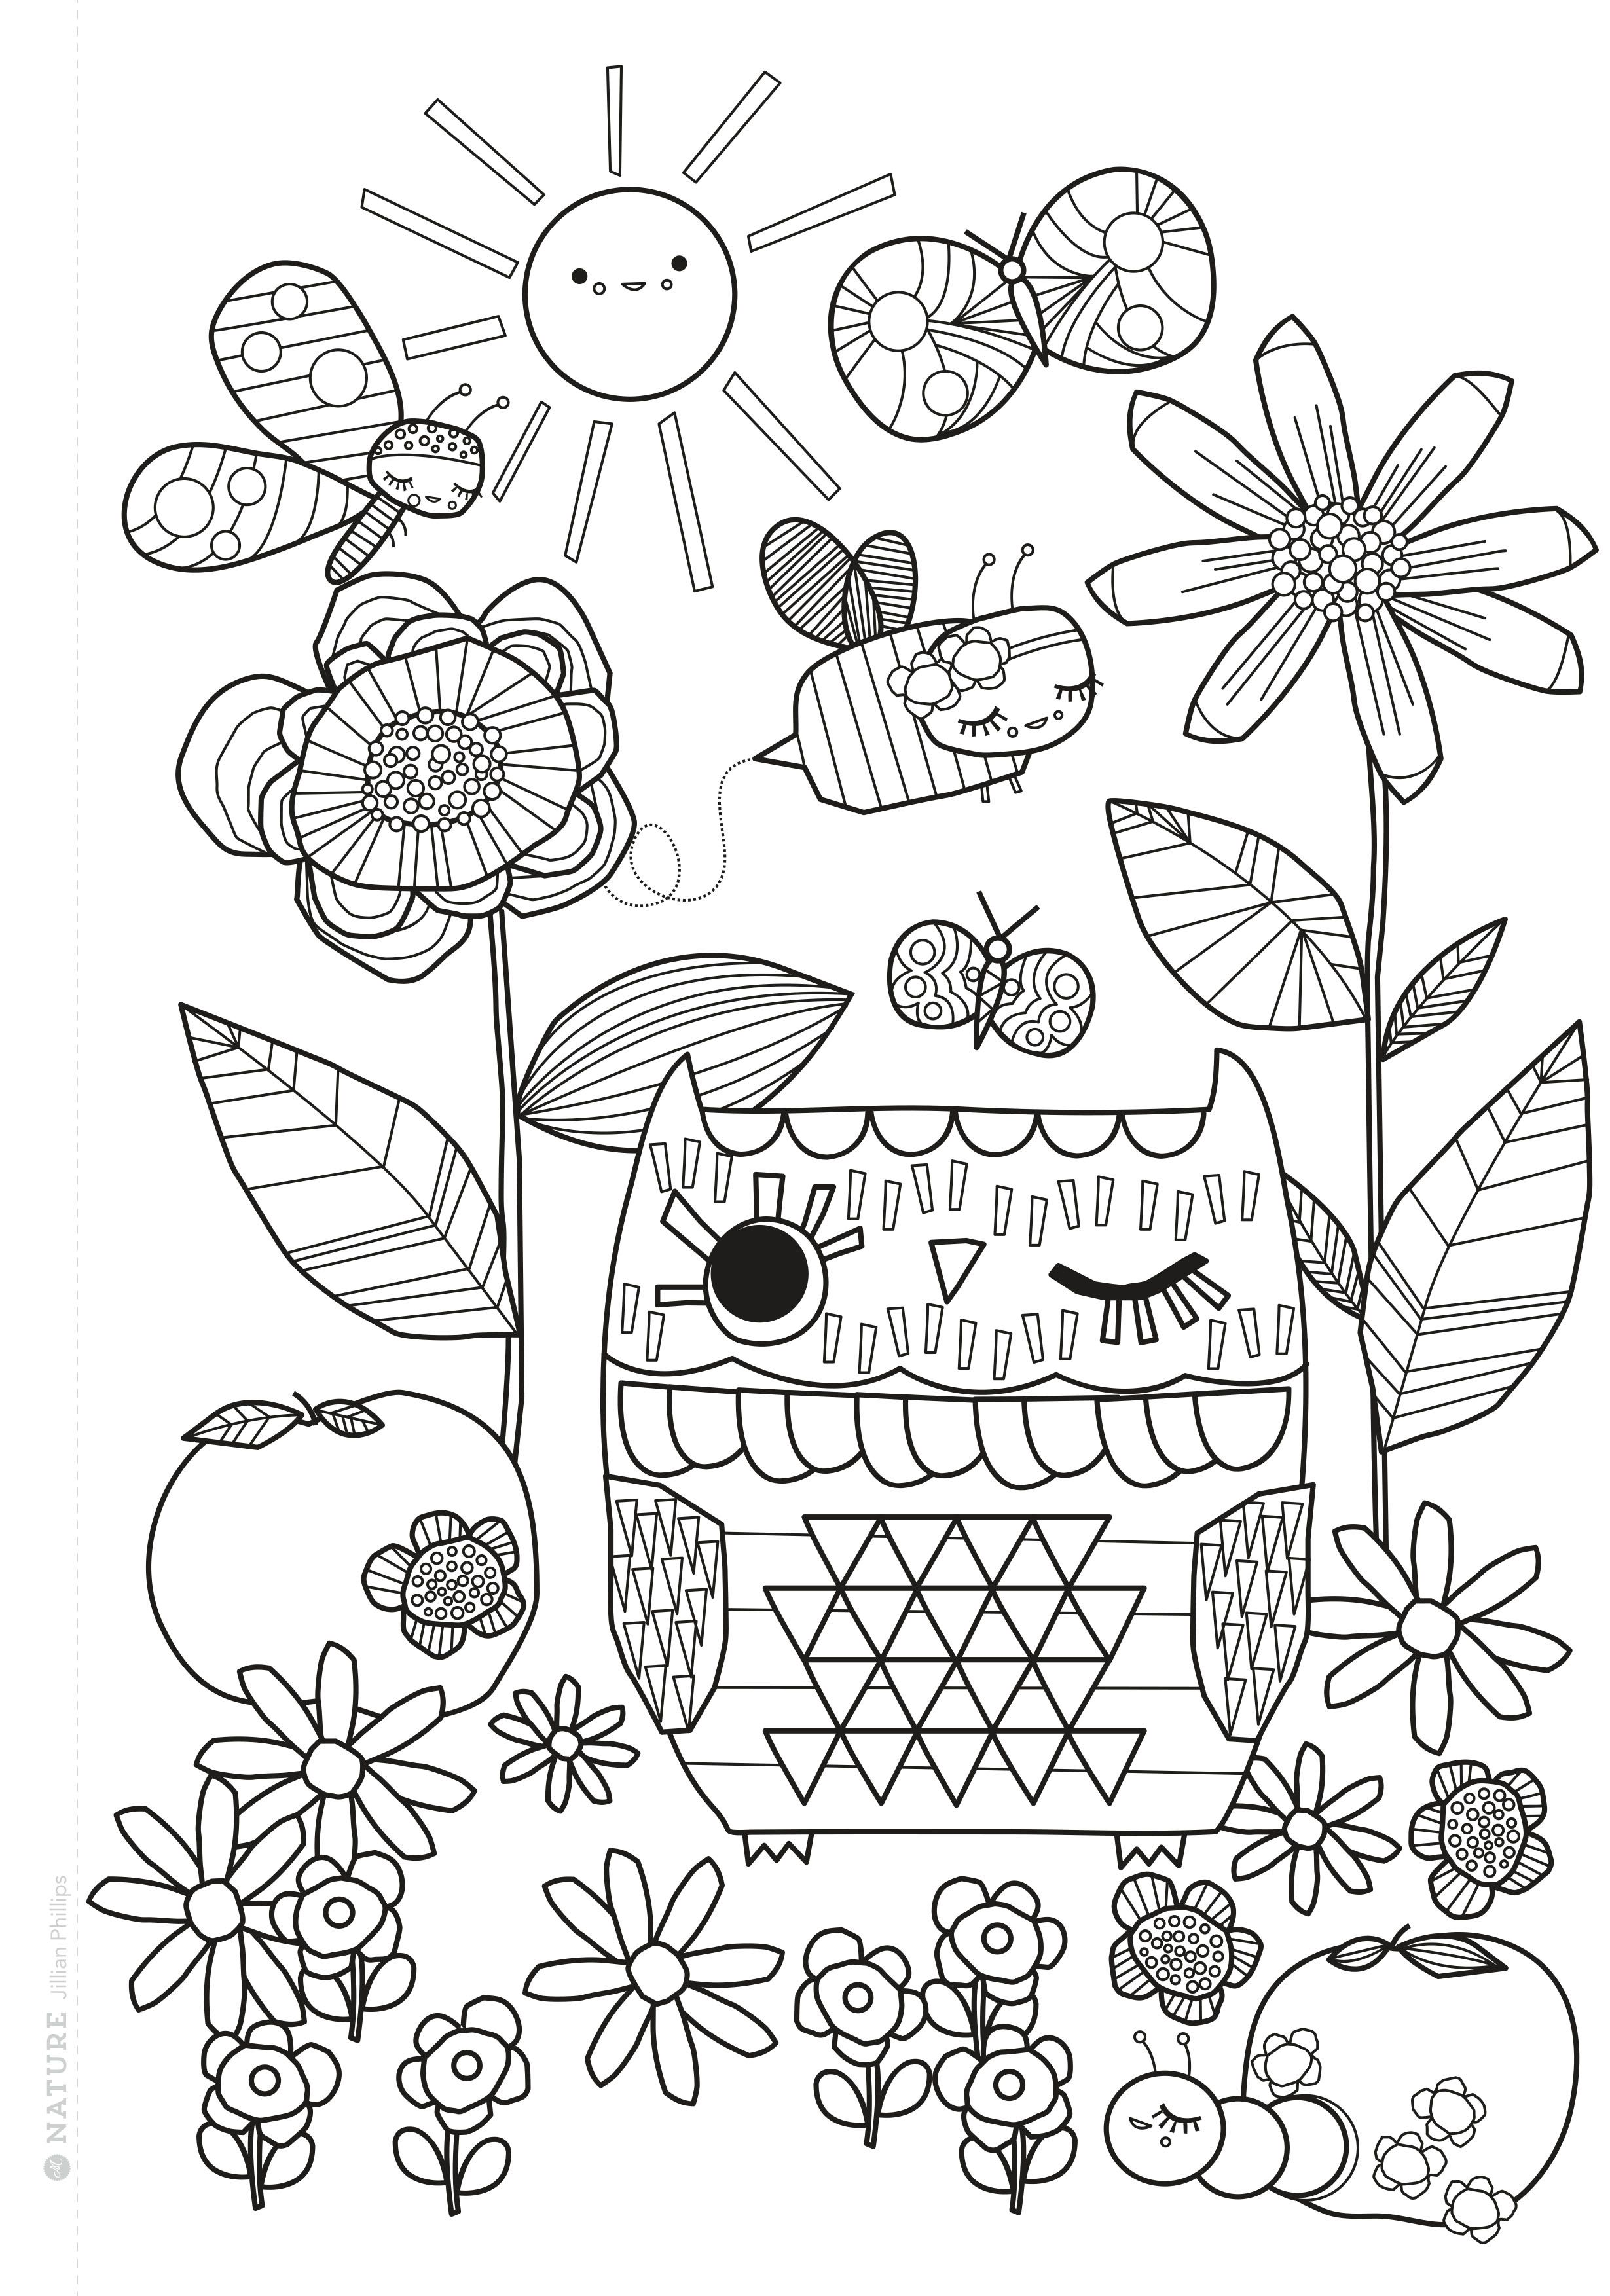 Mollie-Makes-colouring-sheet-free-printable-preview.jpg (2459×3507 ...